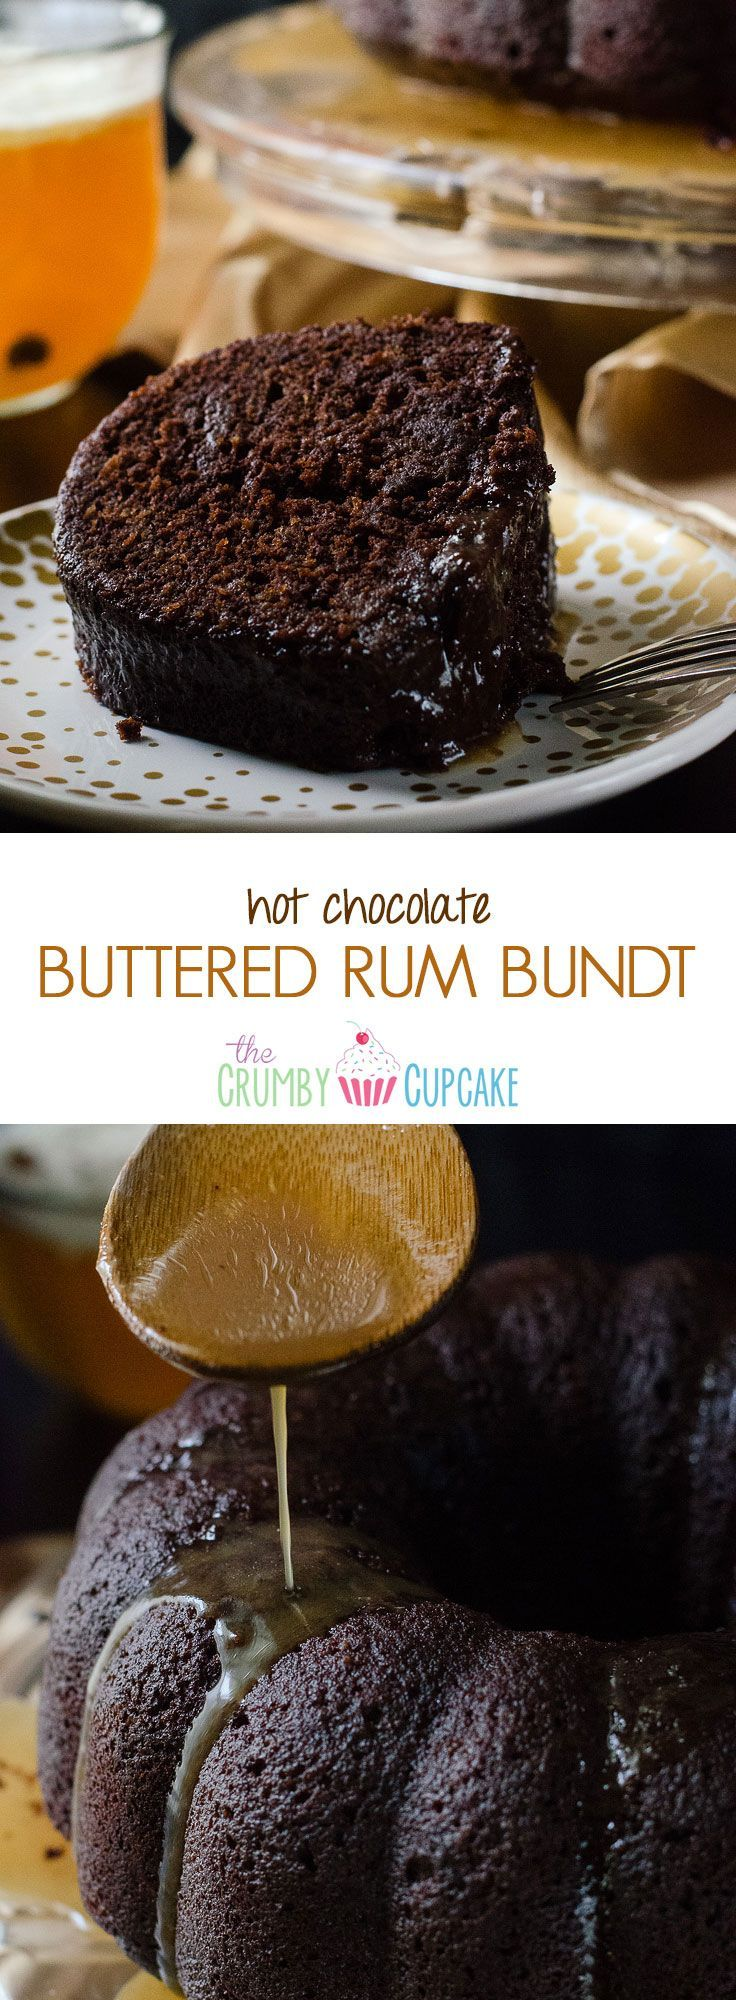 Hot Chocolate Buttered Rum Bundt | This dense chocolate cake is spiced and flavored like a mug of Hot Buttered Rum, then doused in a butter rum glaze - it's the ultimate boozy bundt!